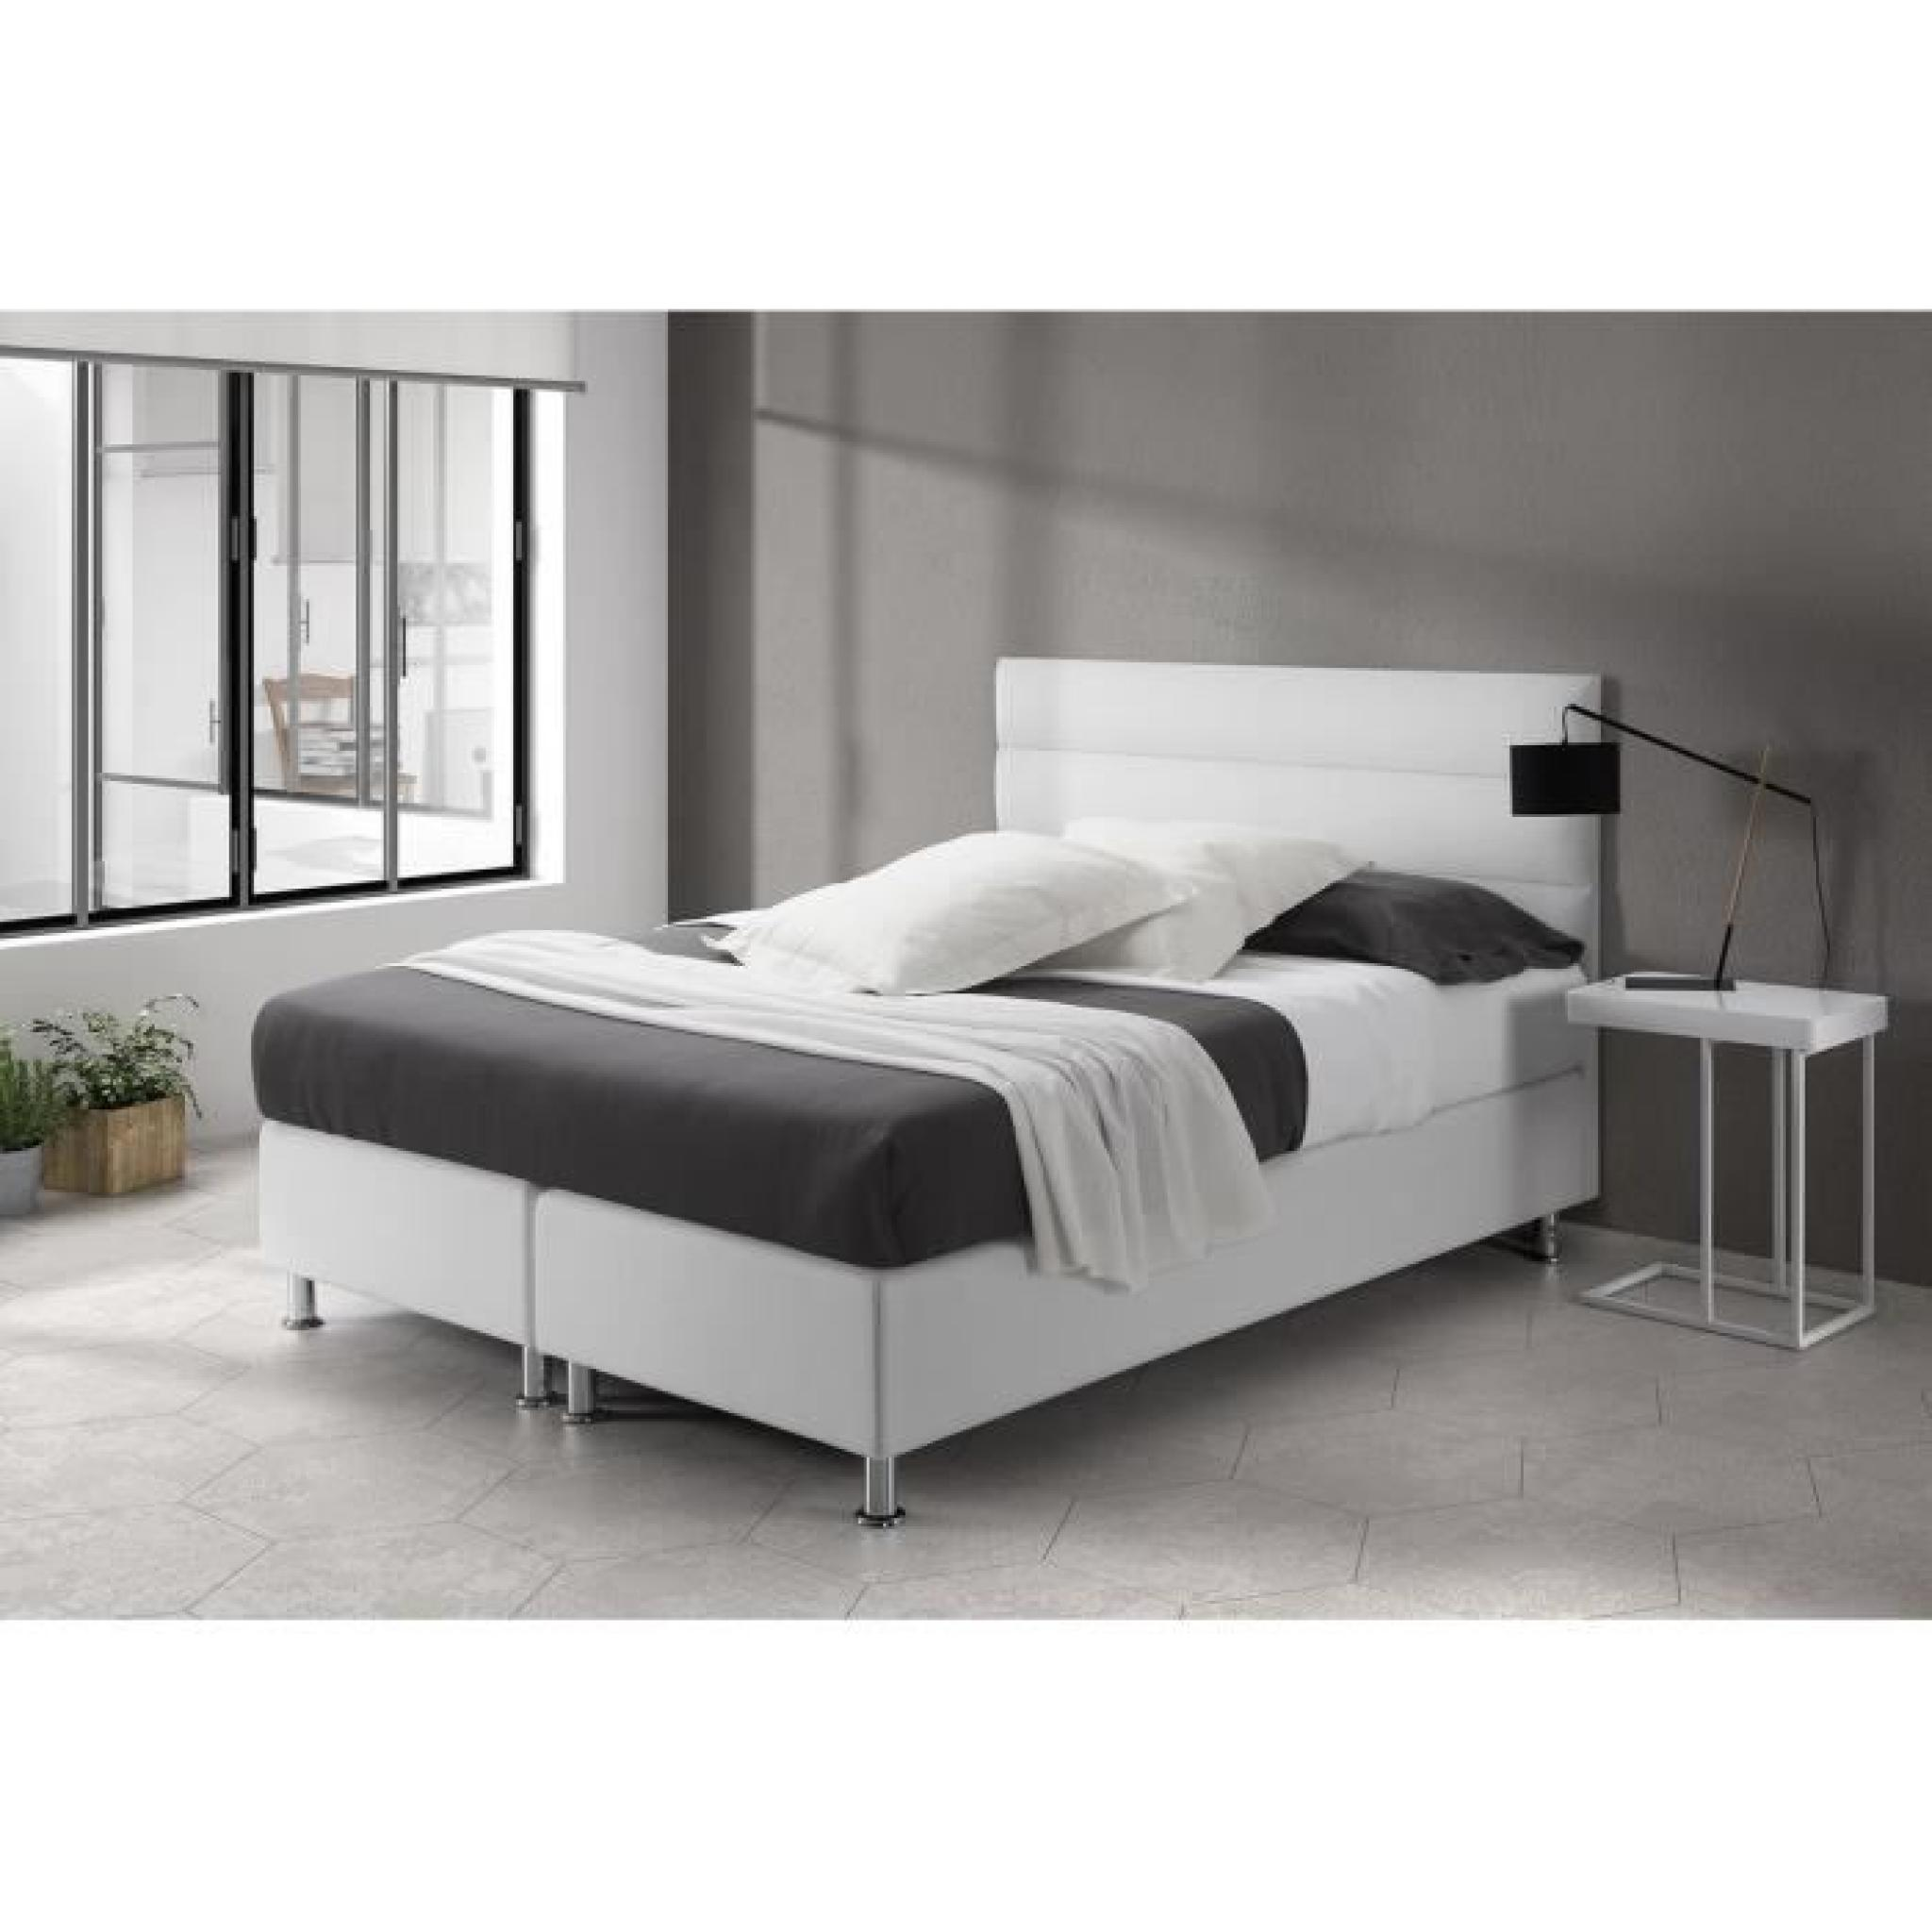 pari lit matelas boxspring 160x200 cm blanc achat vente lit pas cher couleur et. Black Bedroom Furniture Sets. Home Design Ideas